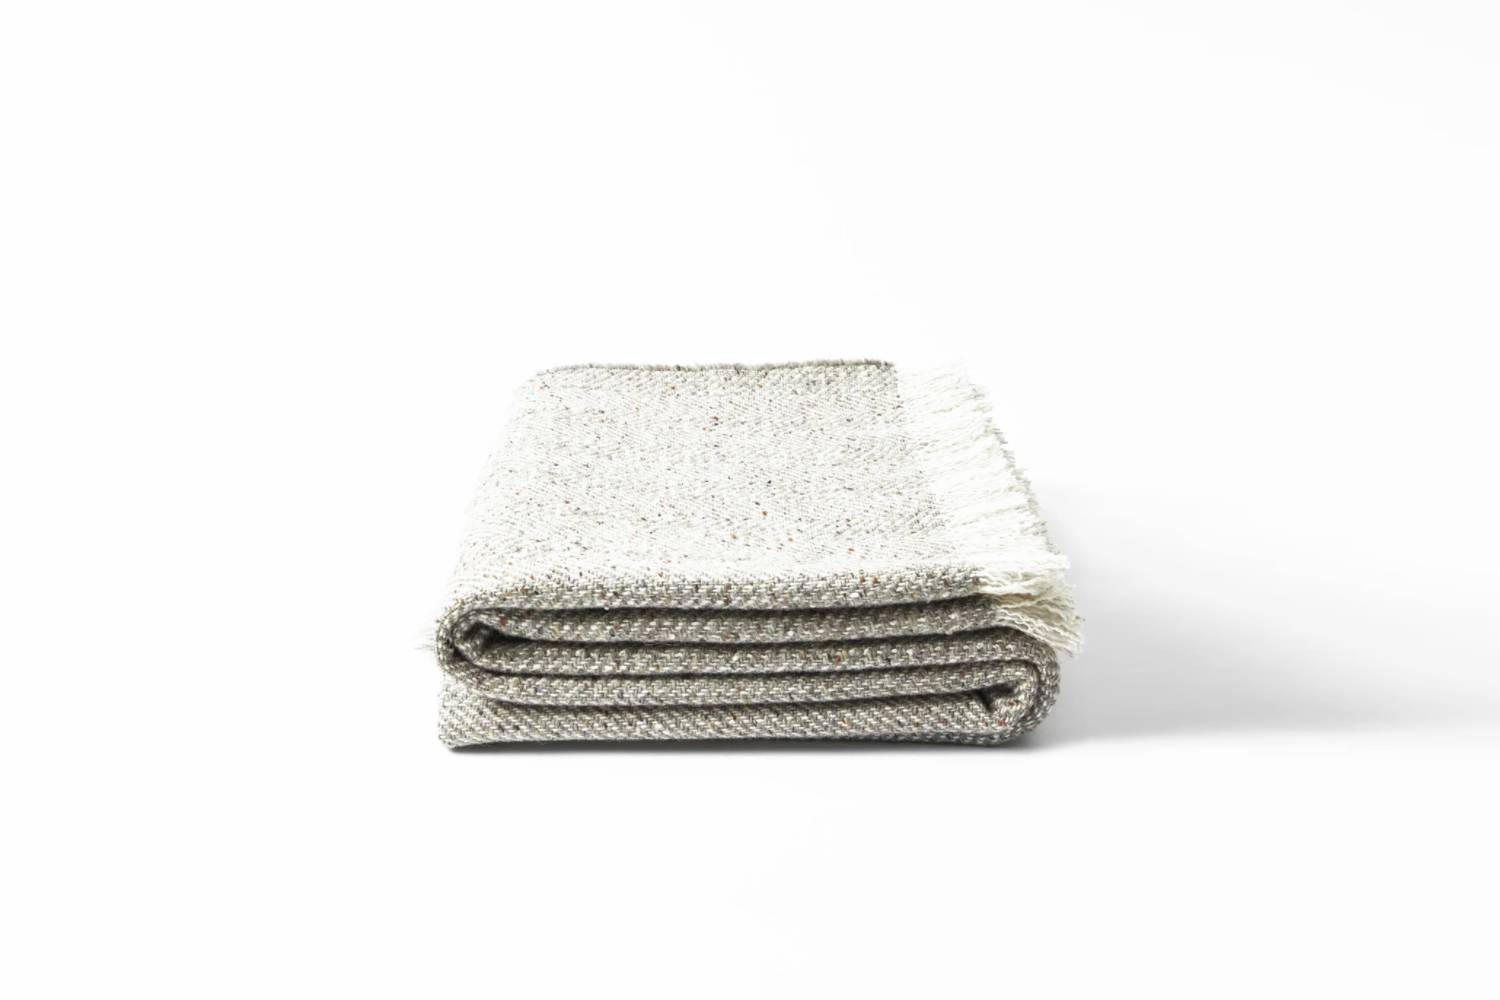 The Textured Herringbone Blanket is £5 from Mourne Textiles.